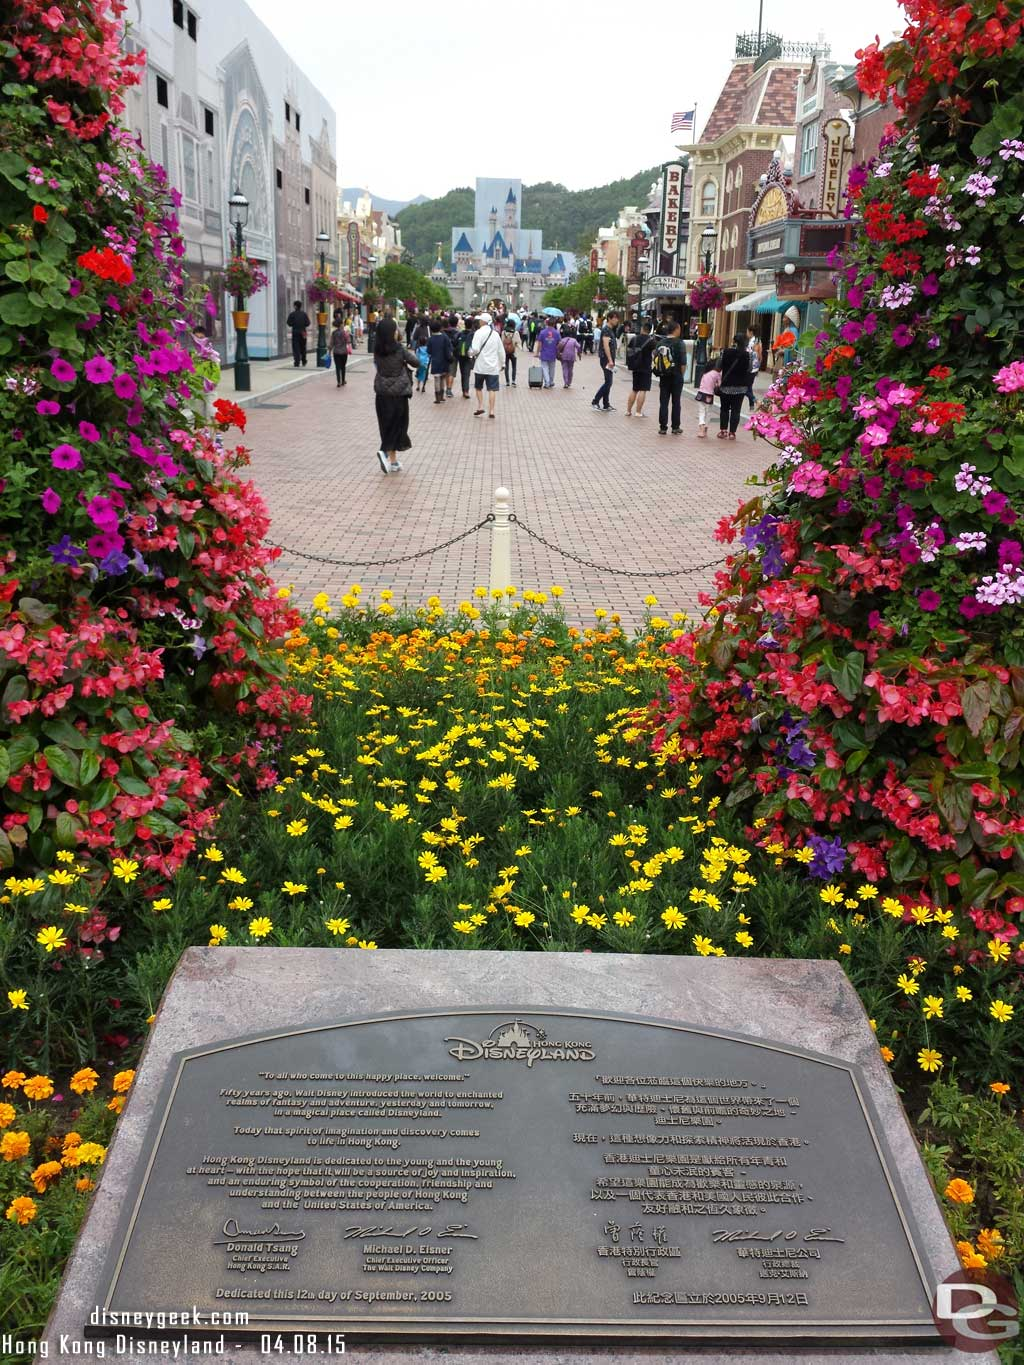 Hong Kong Disneyland - Main Street USA Dedication Plaque